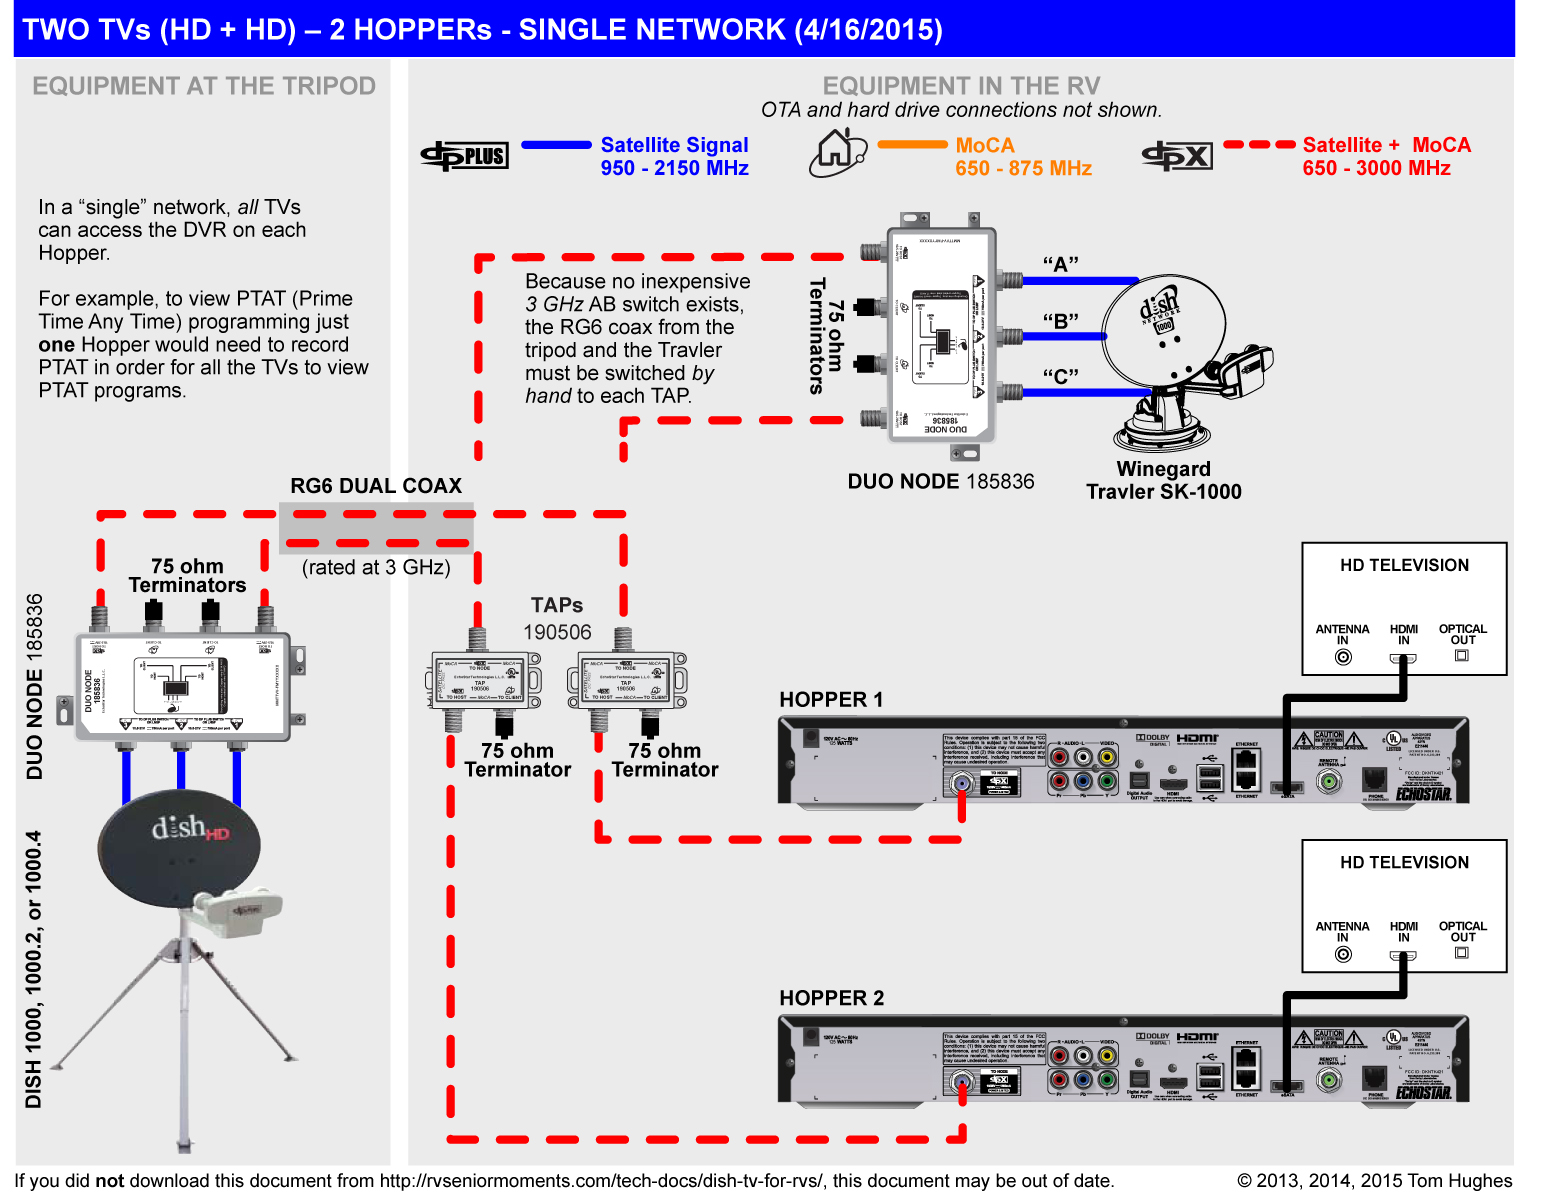 210_dish_twotvs_two_hoppers_single_network_hdhd720dpi directv whole home dvr wiring diagram directv free wiring dish network wiring diagrams dual tuner at creativeand.co